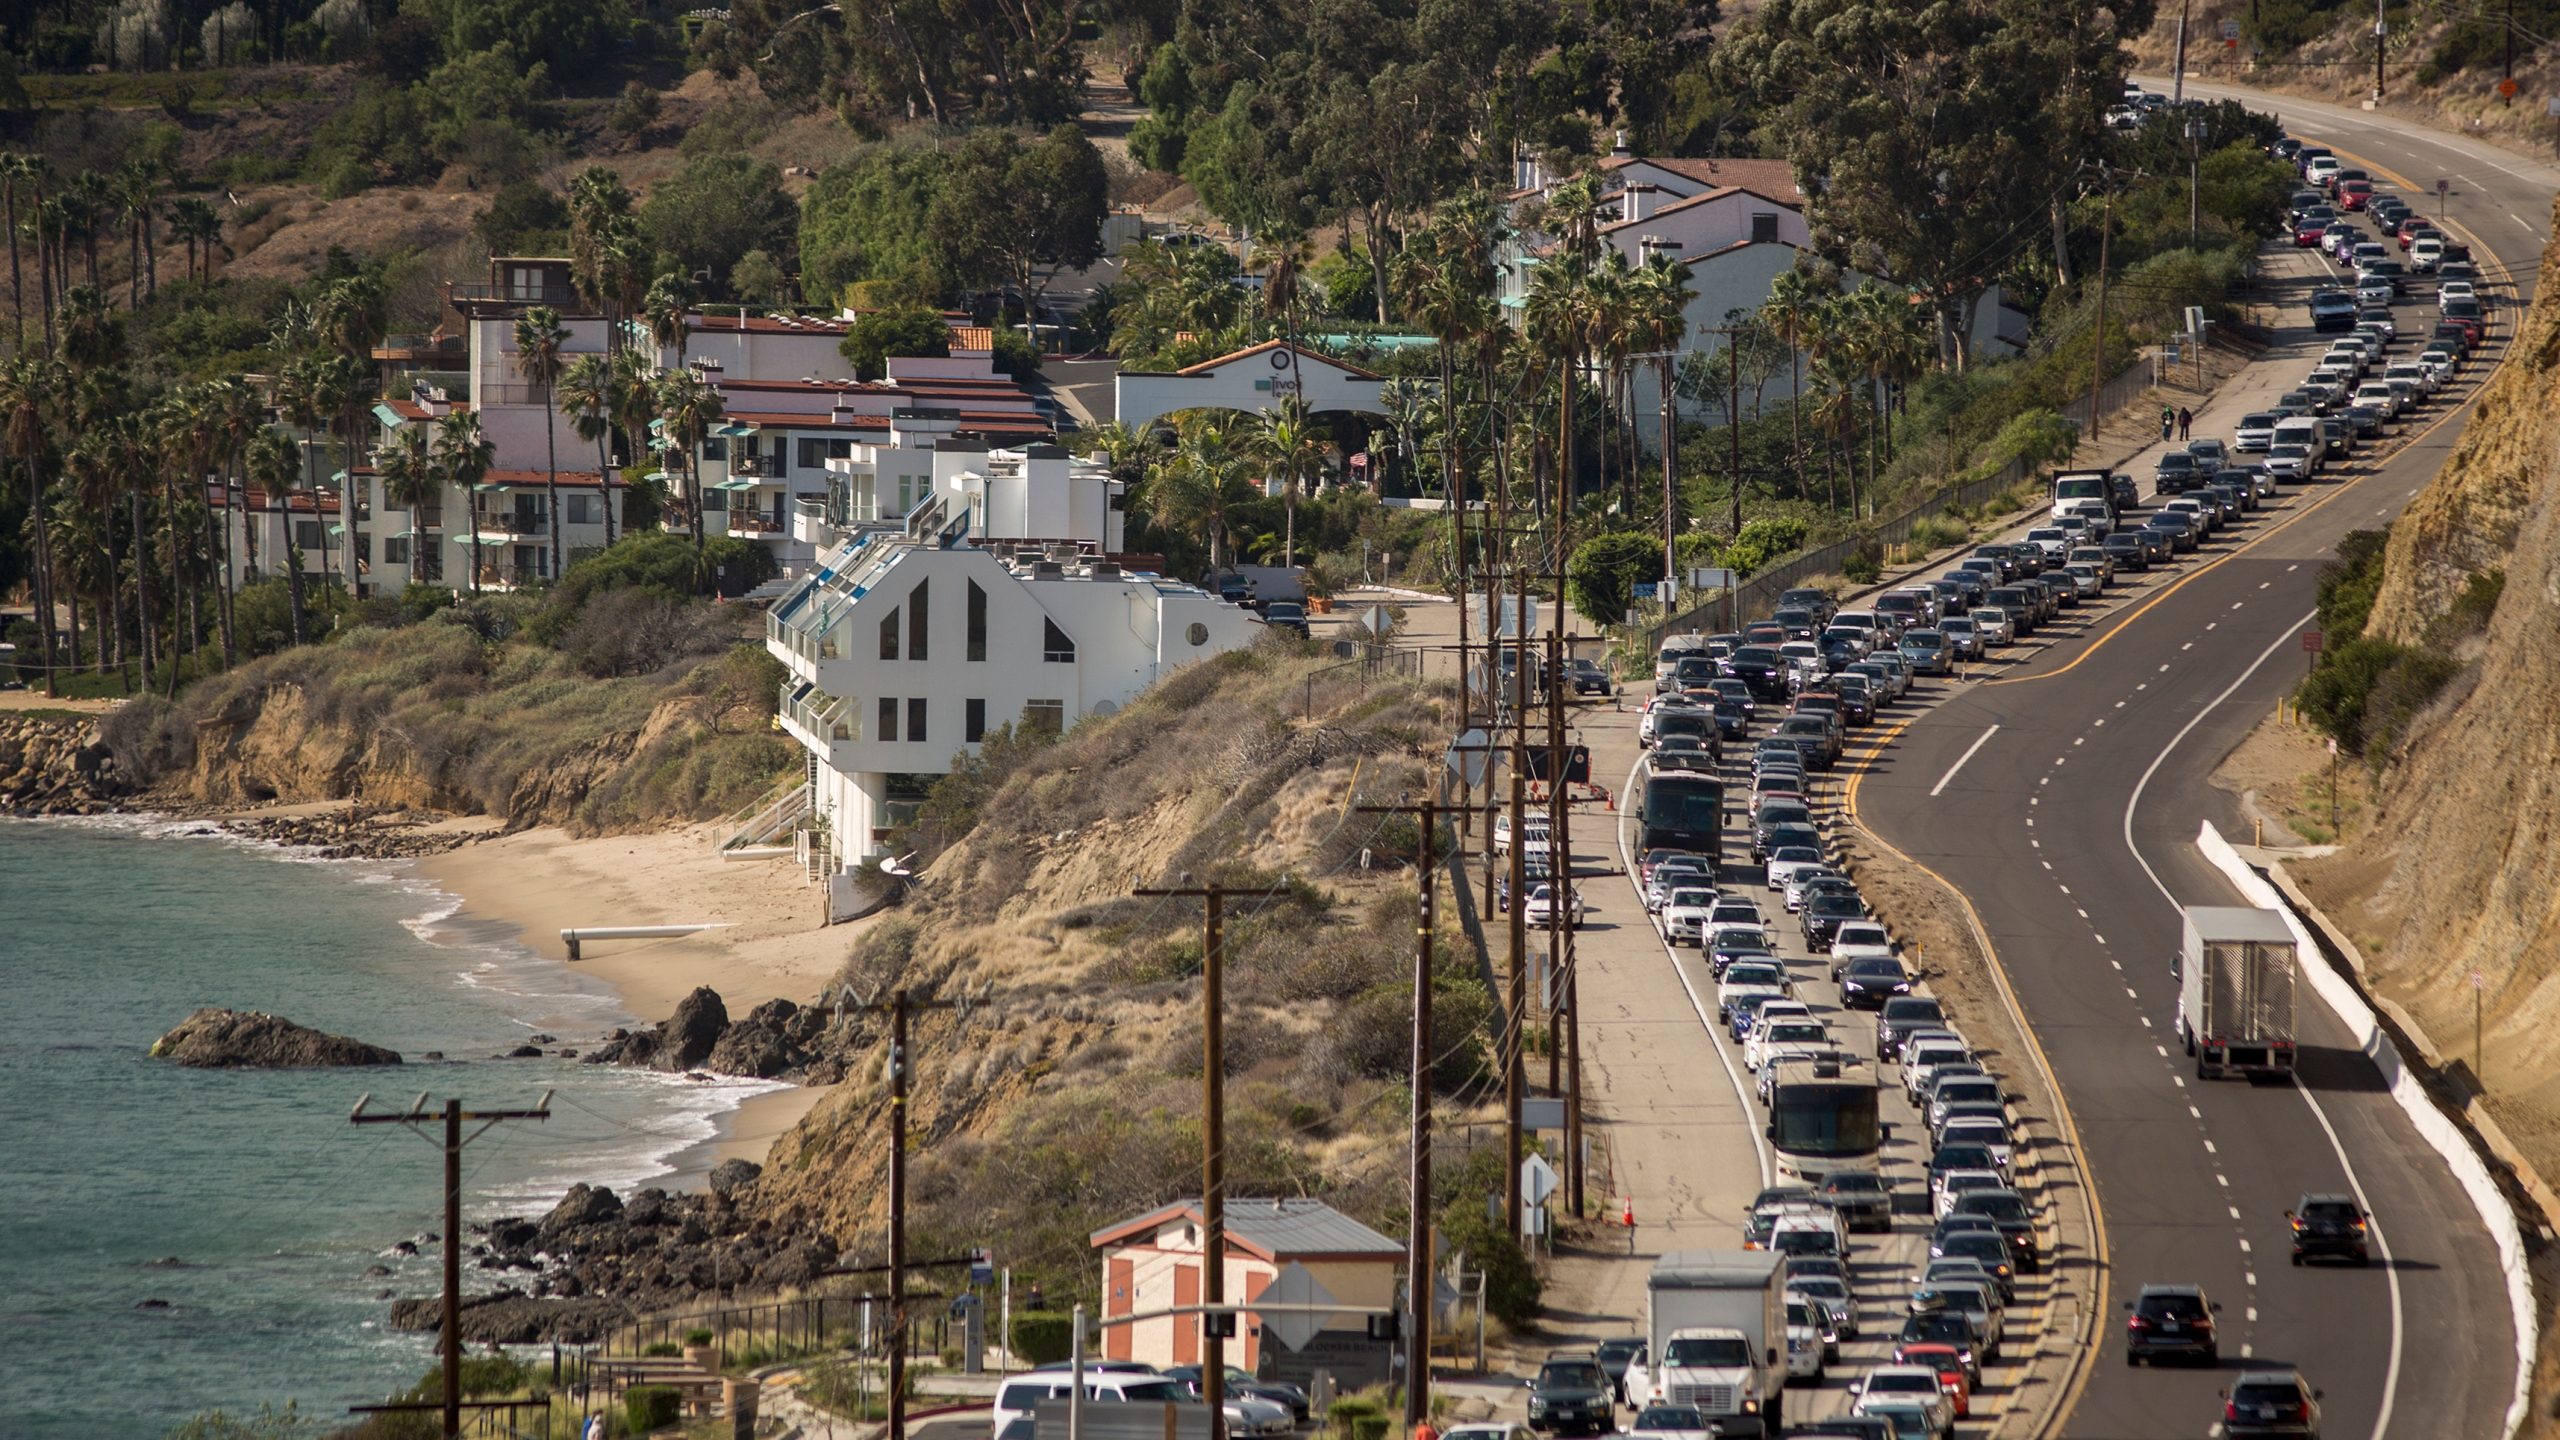 Traffic jams the southbound lanes of Pacific Coast Highway as all of the city of Malibu is evacuated to flee advancing flames during the Woolsey Fire on Nov. 9, 2018. (David McNew / Getty Images)